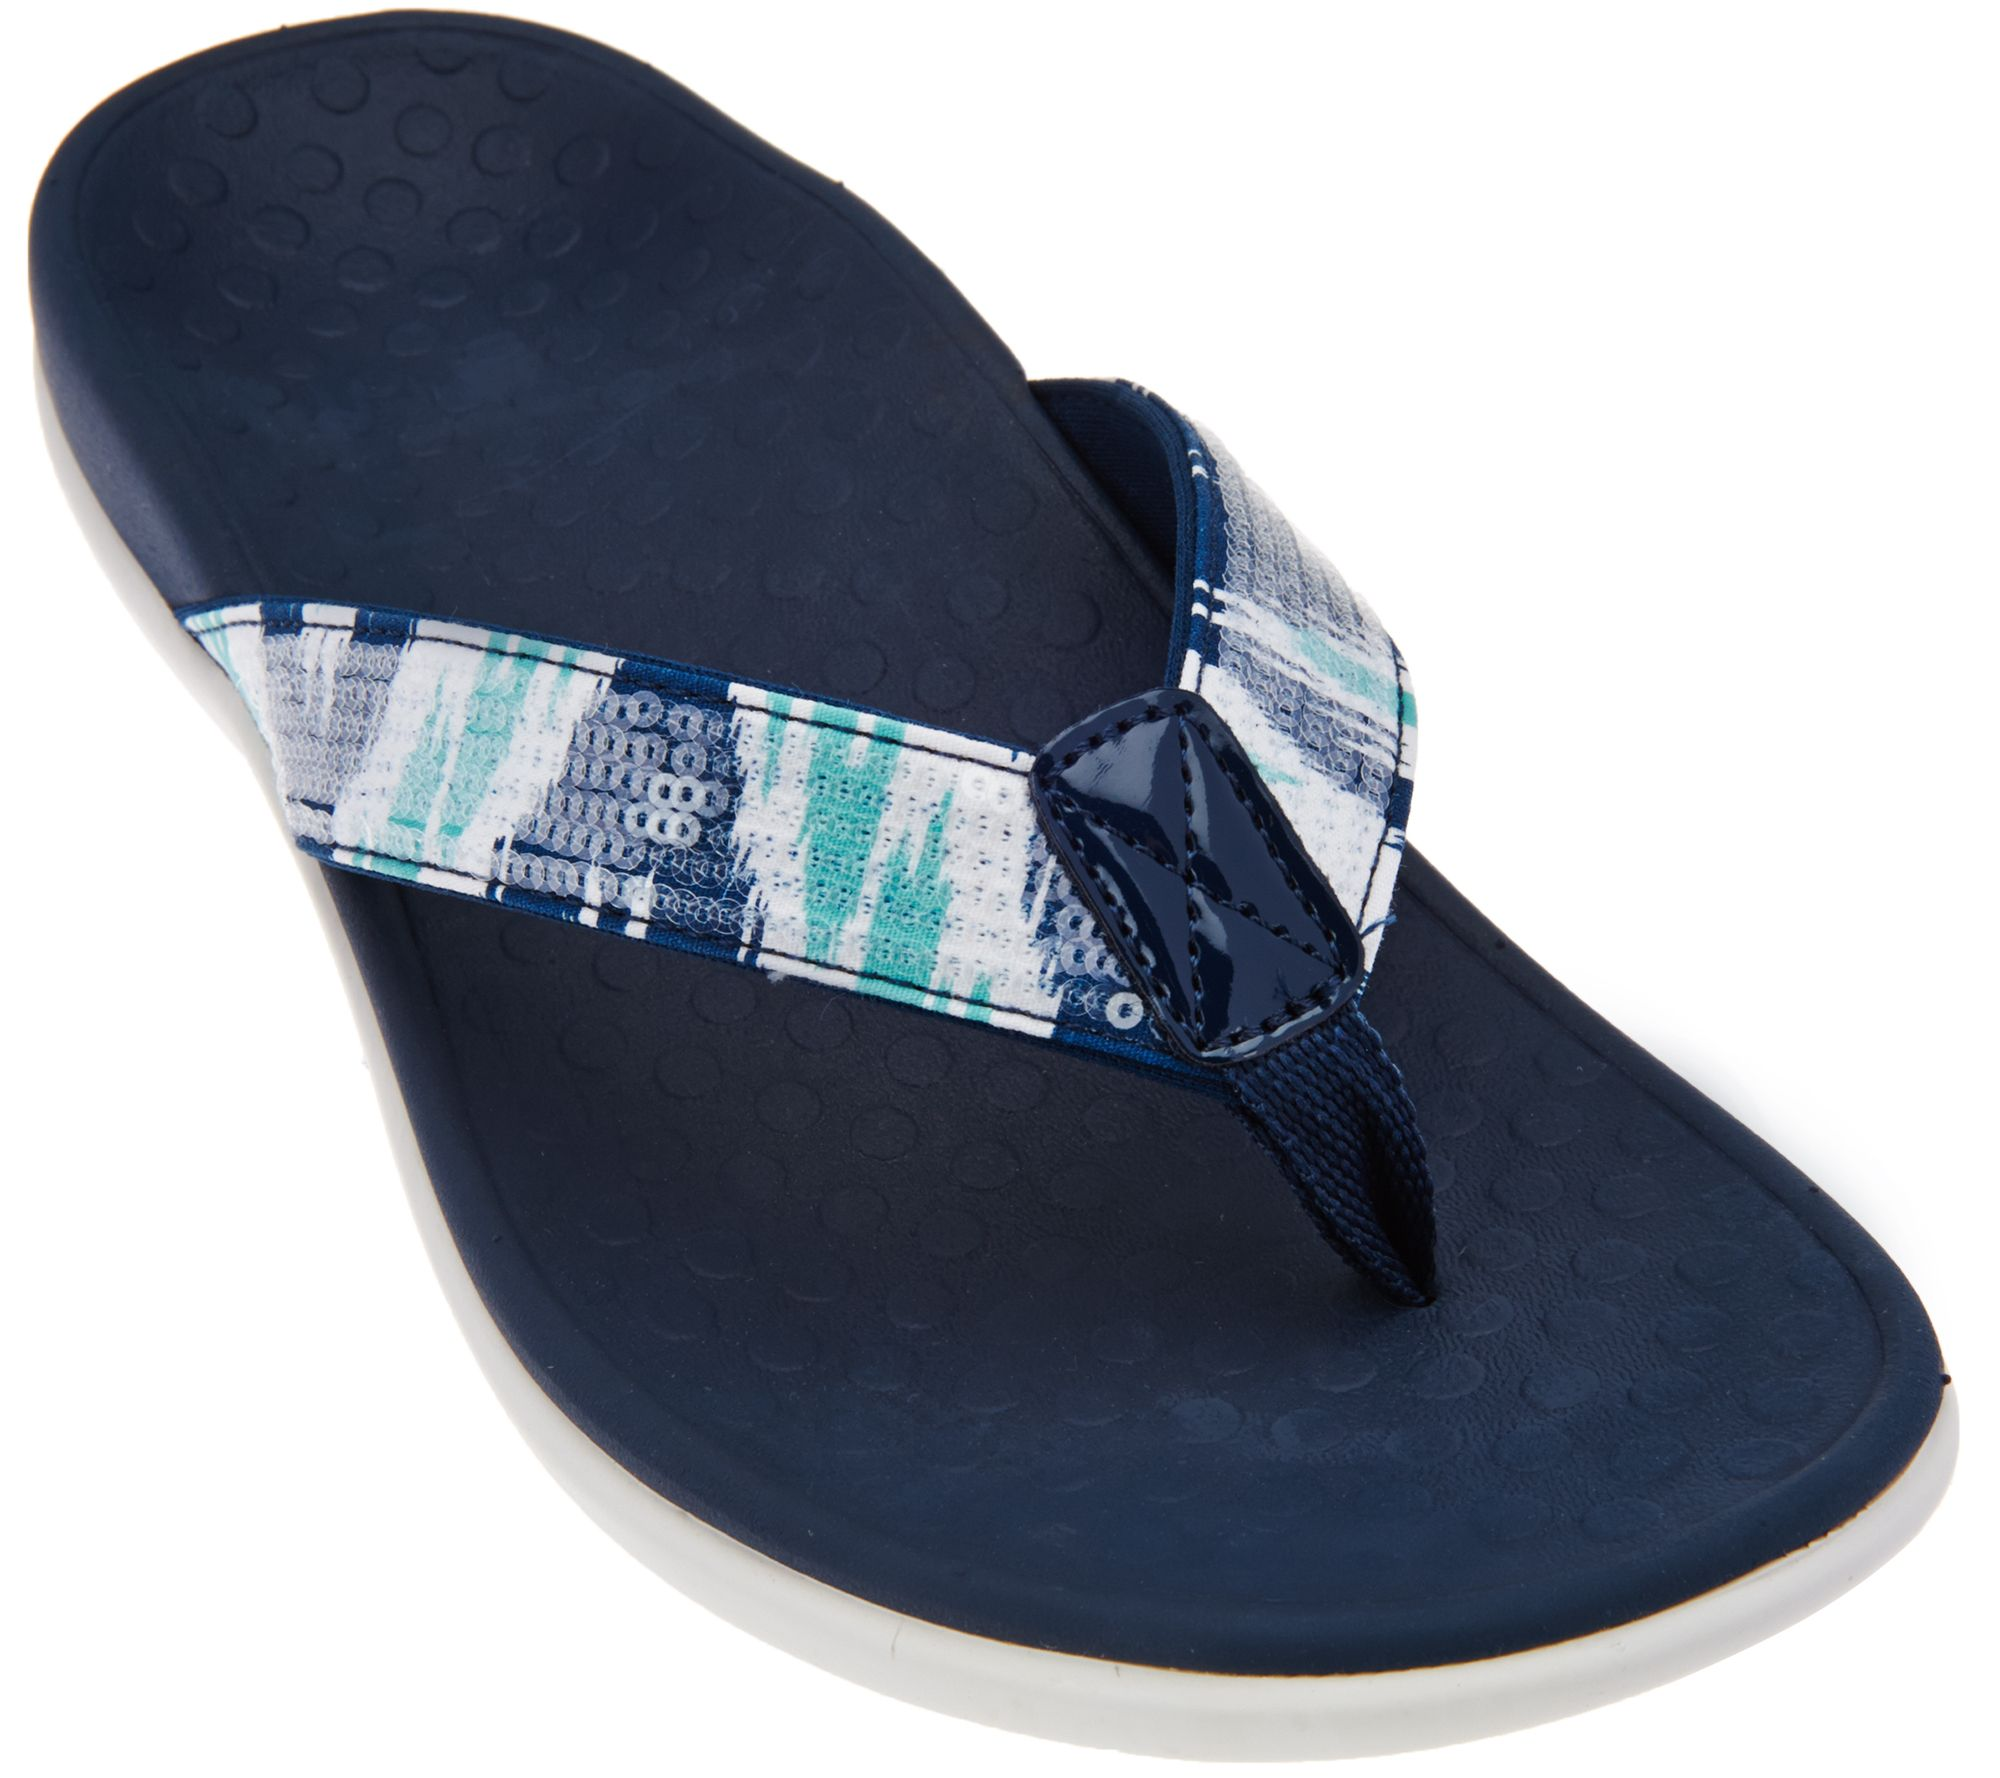 Vionic Orthotic Thong Sandals - Tide Sequins